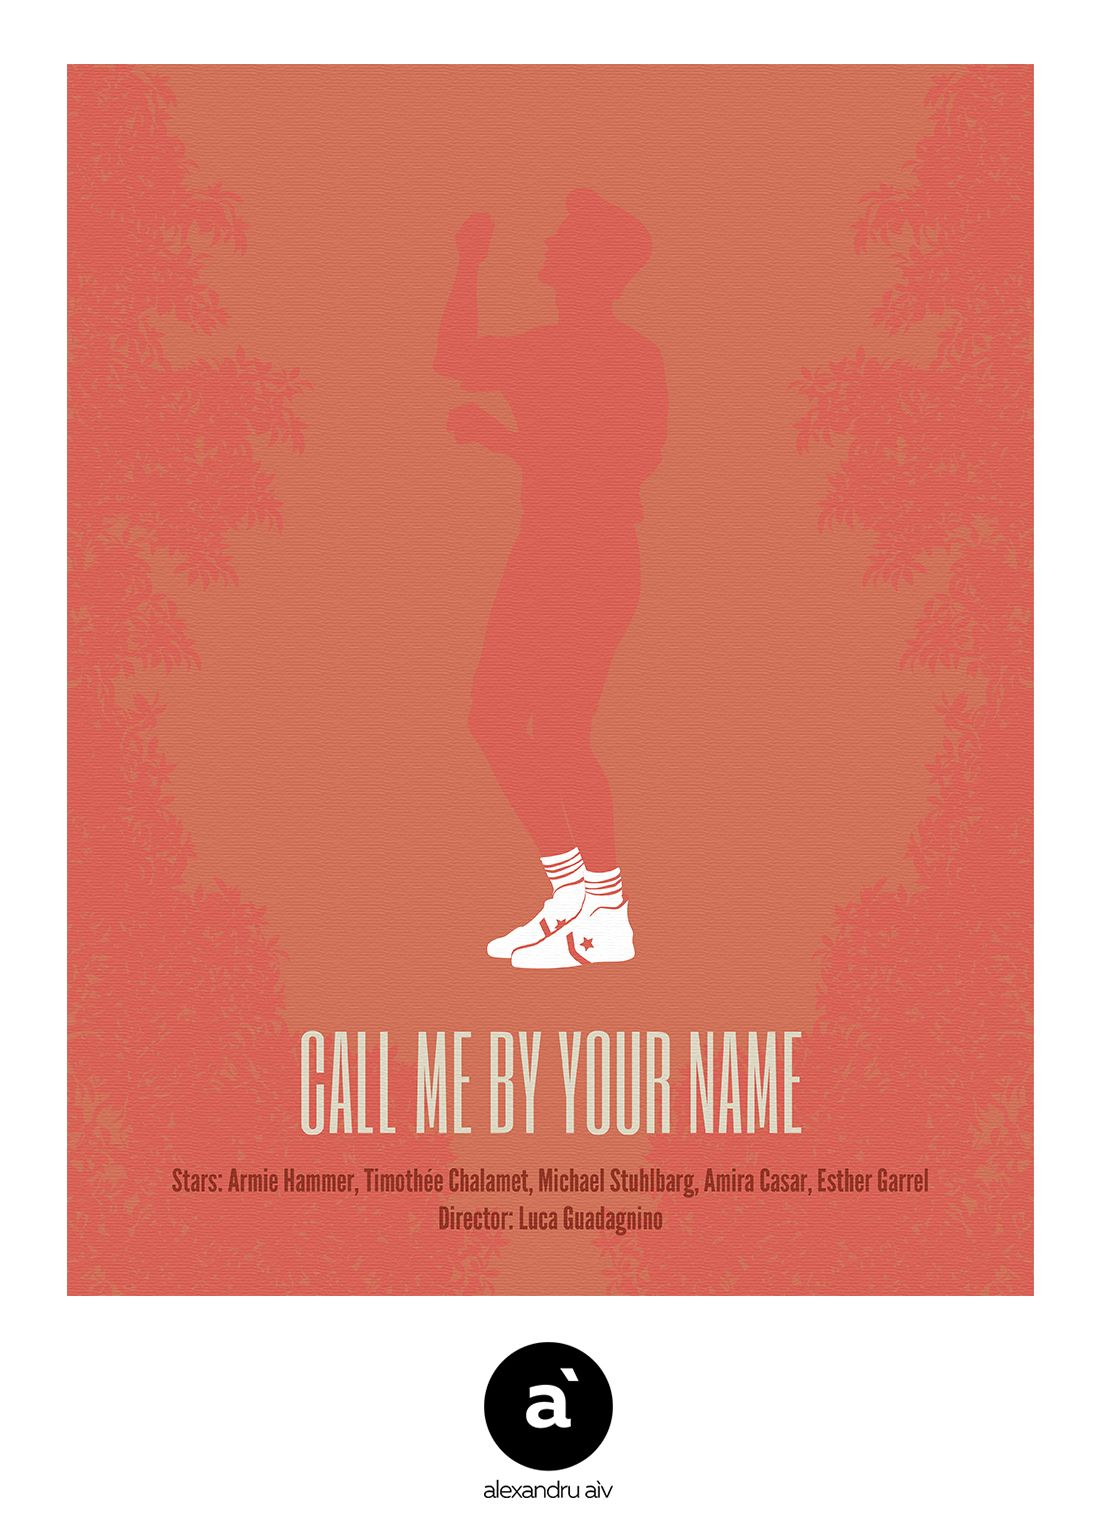 Call Me By Your Name 2017 Minimal Film Poster Pinterest Film